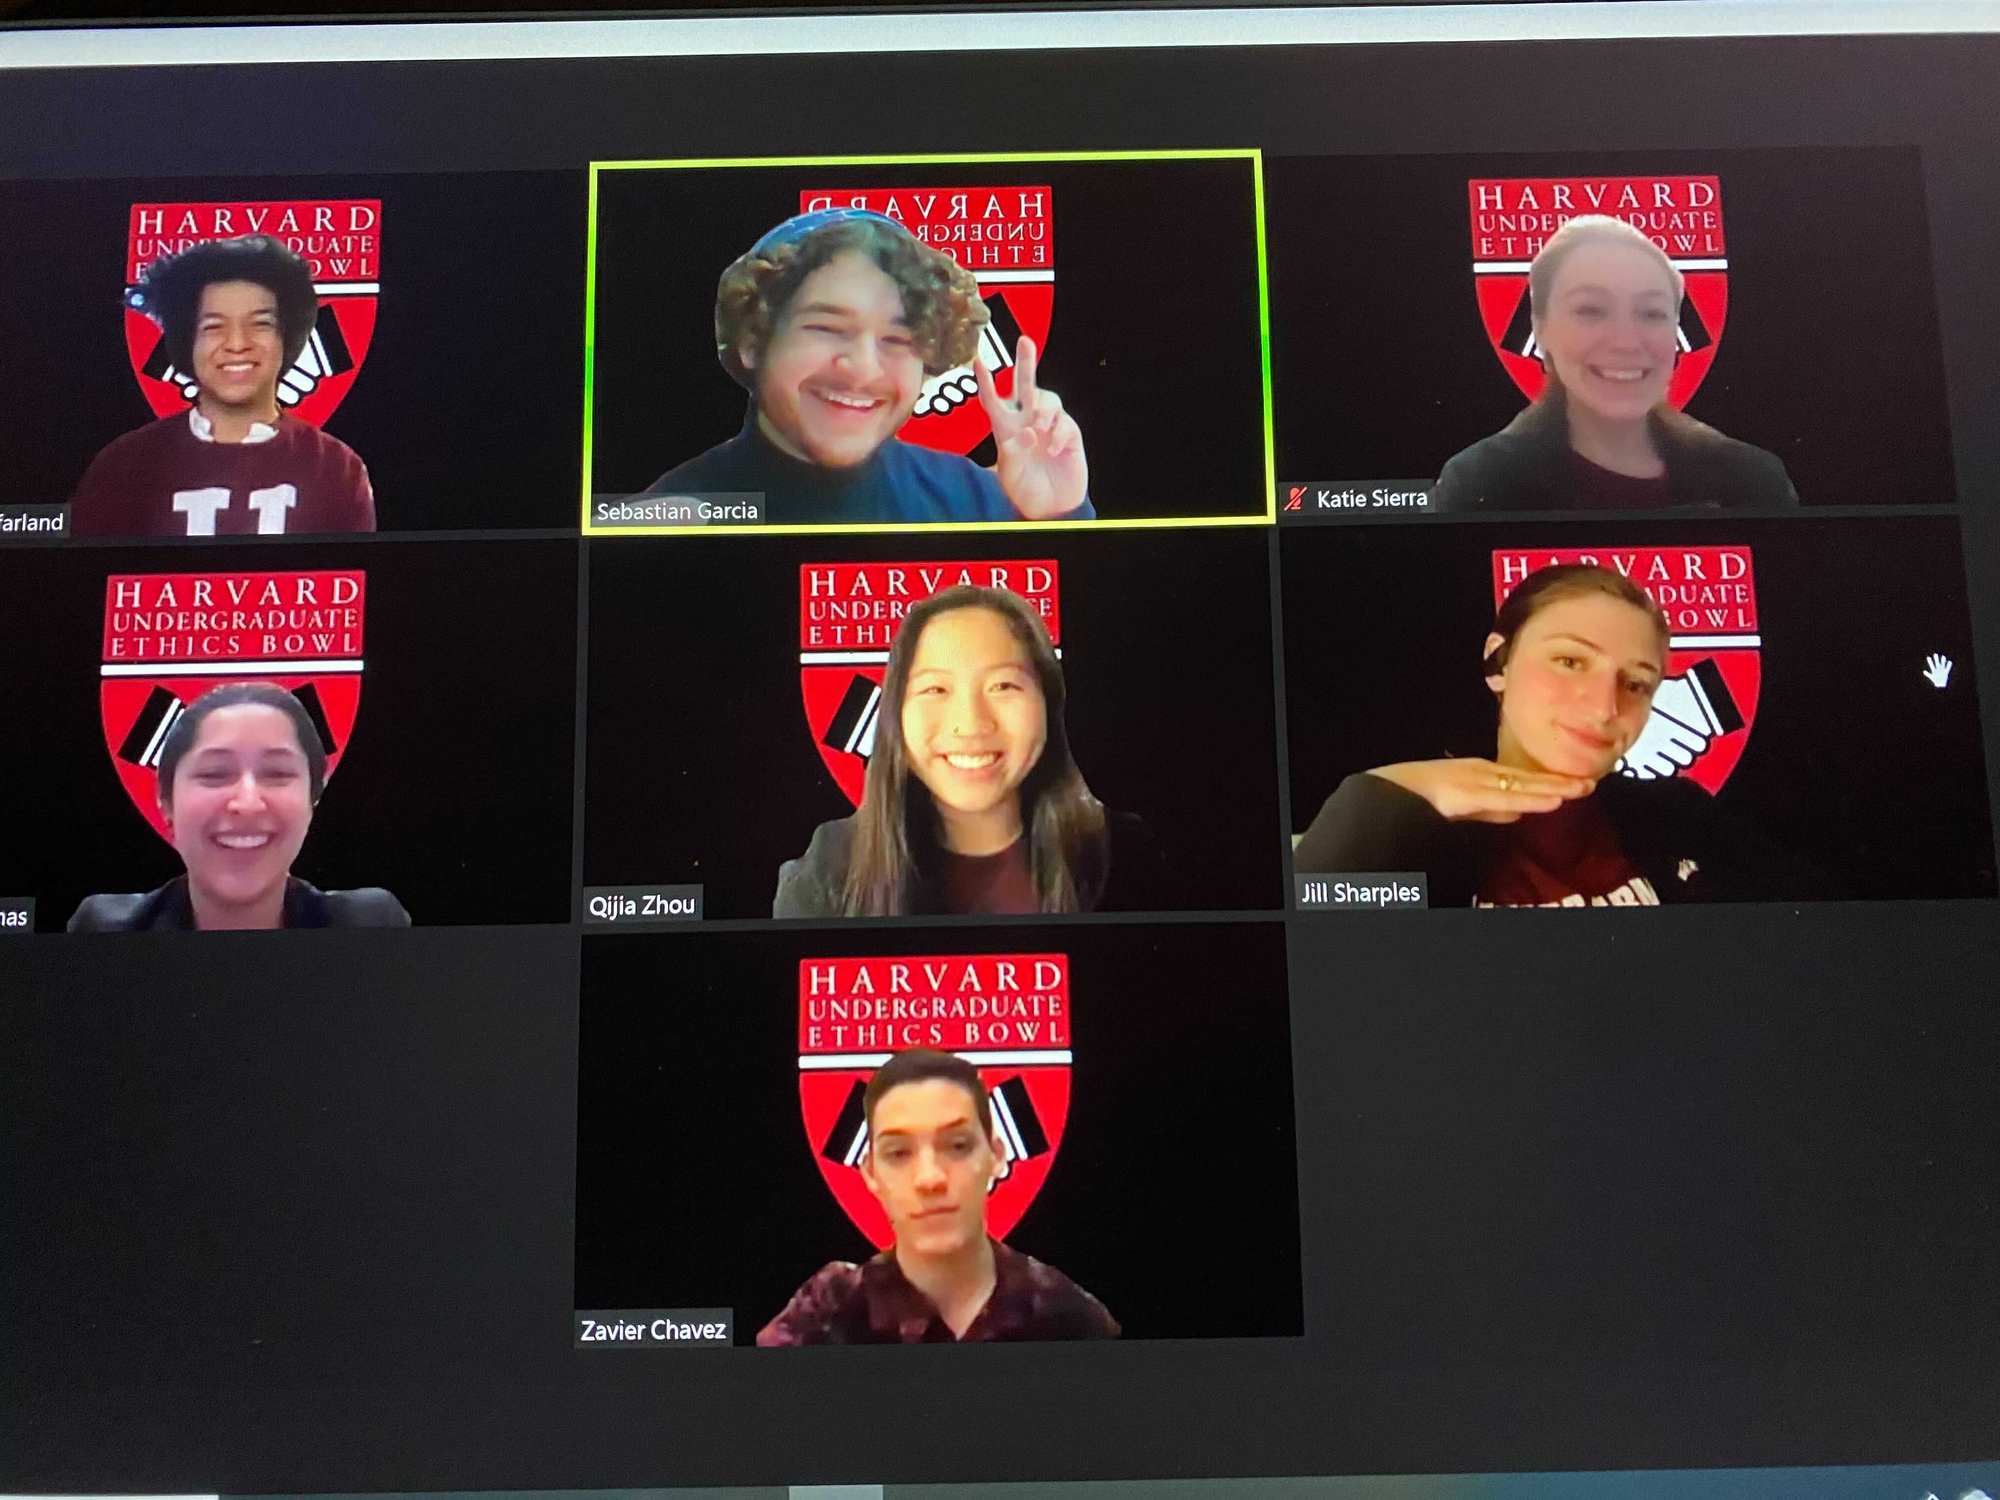 The Harvard Undergraduate Ethics Bowl in a Zoom meeting.